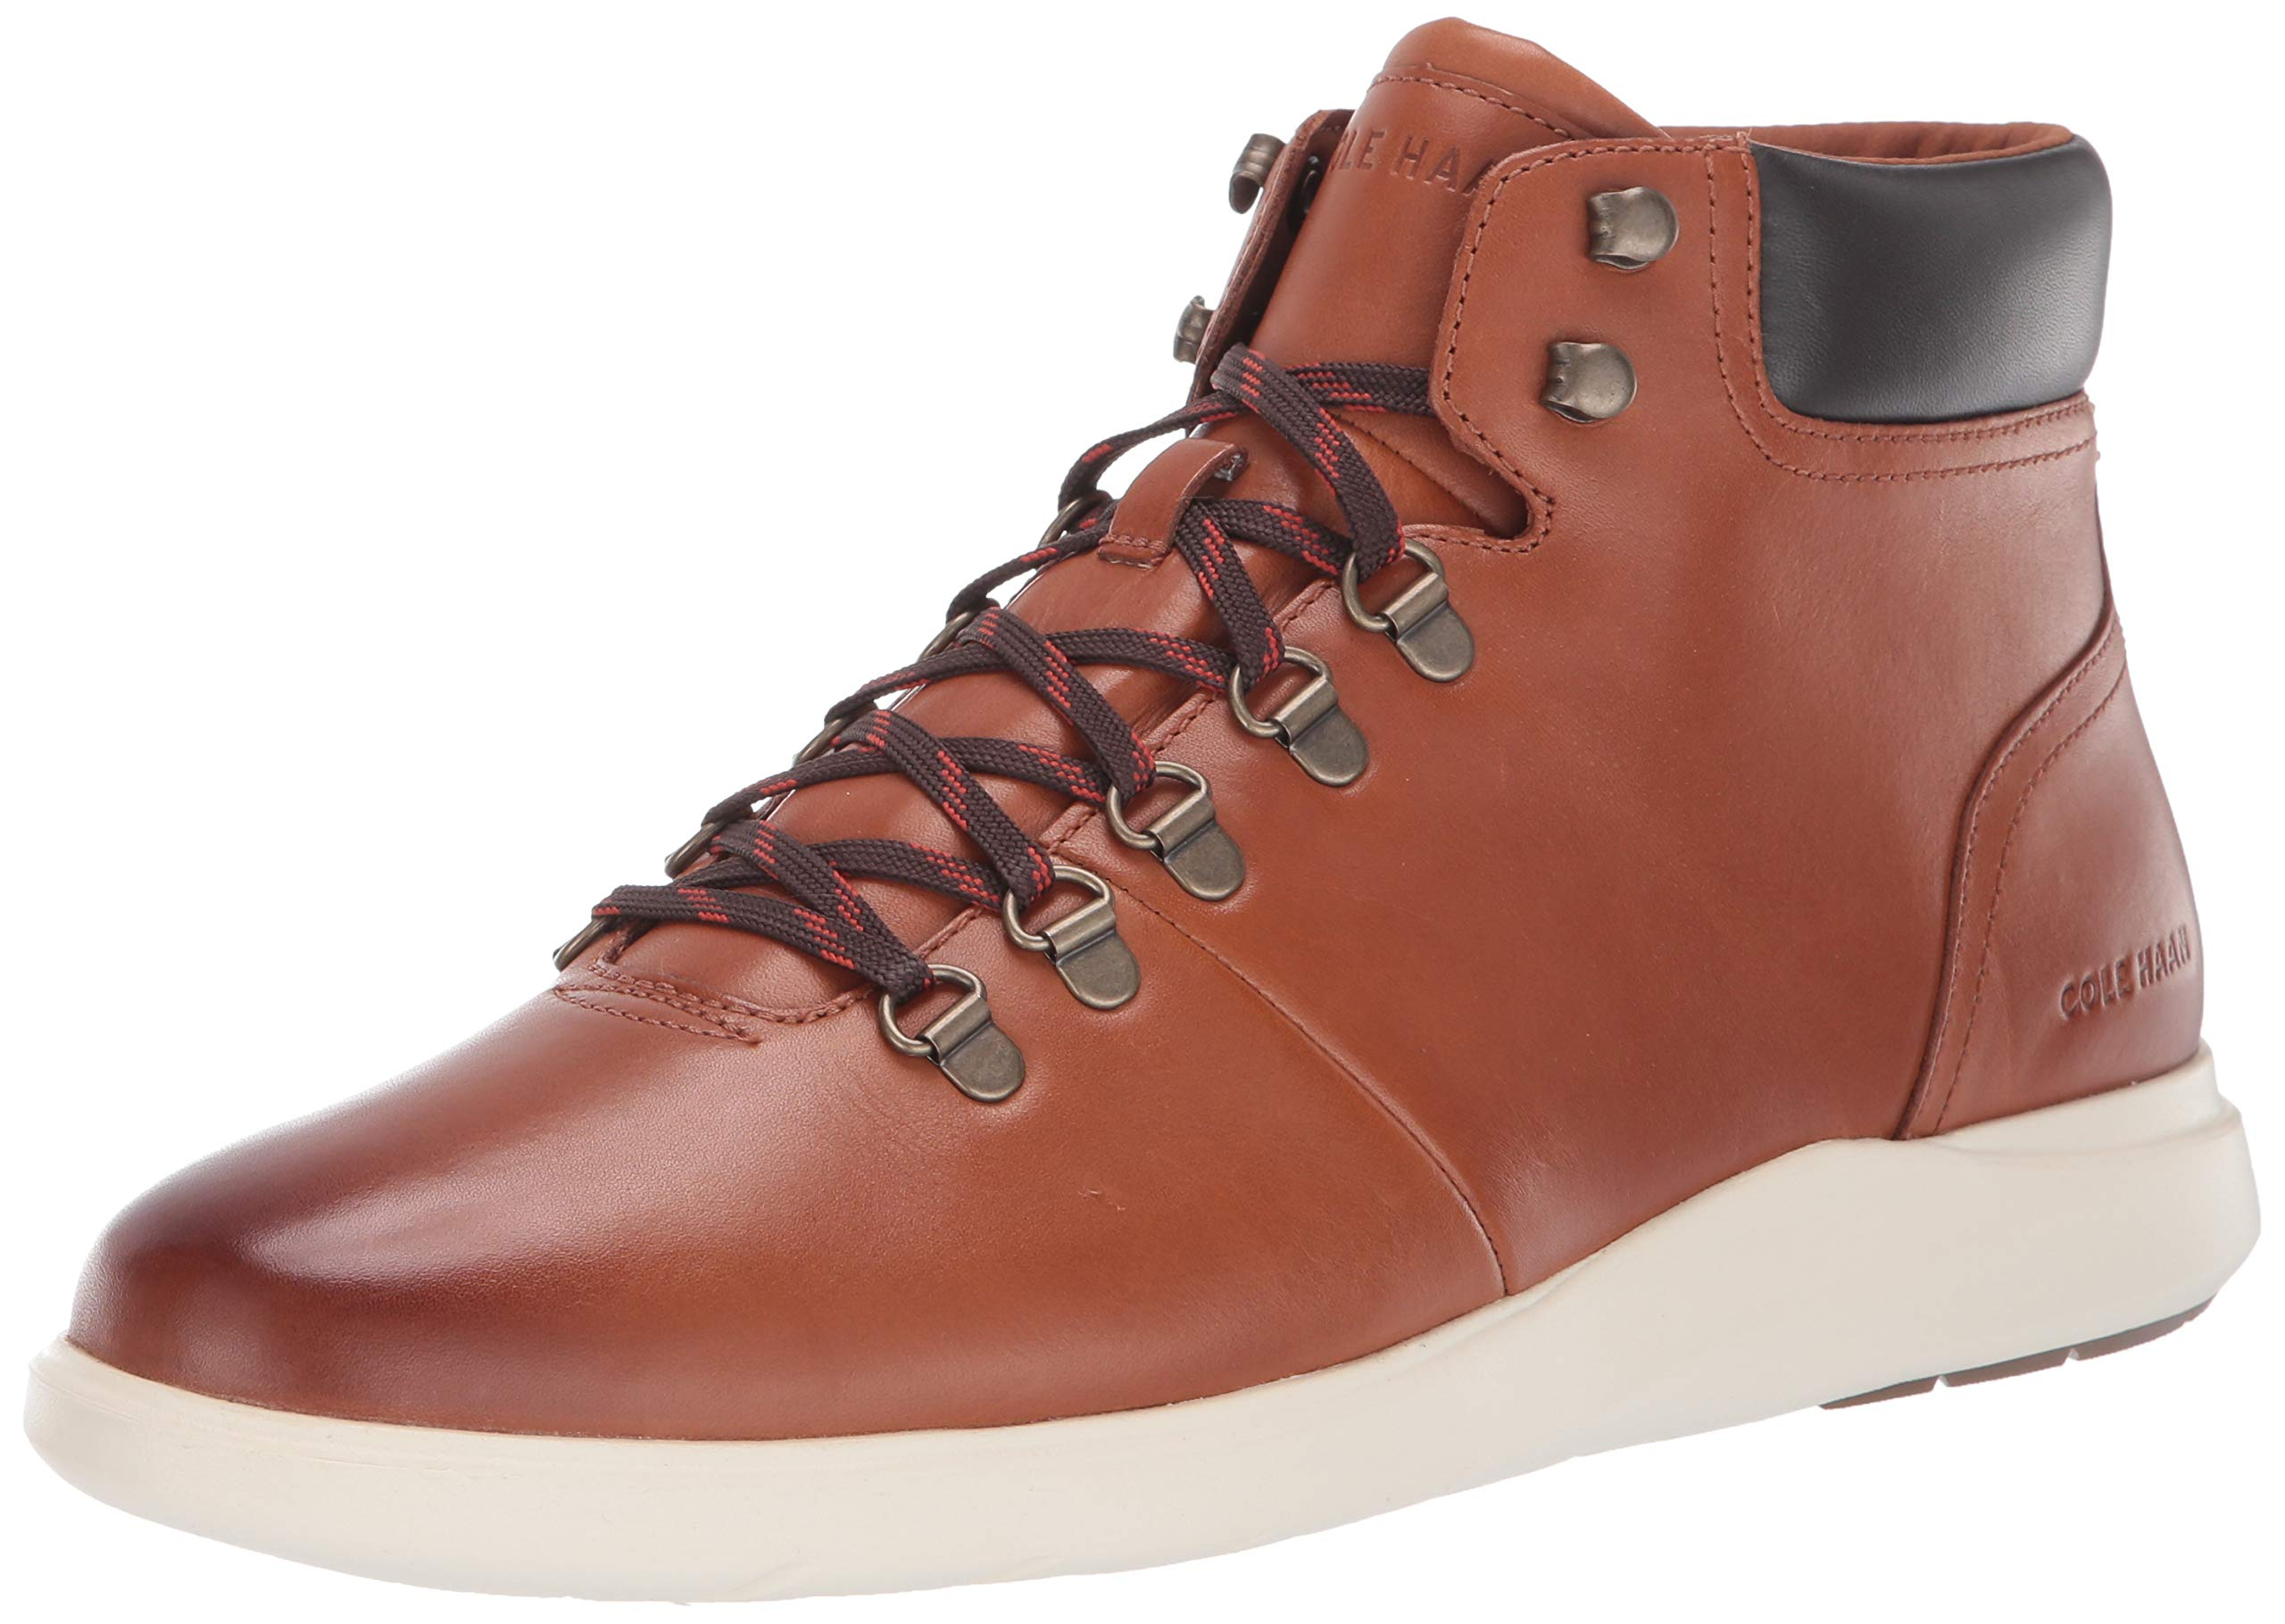 Cole Haan Men's Grand Plus Essex Hiker Boot, Brown, 8.5 M US by Cole Haan